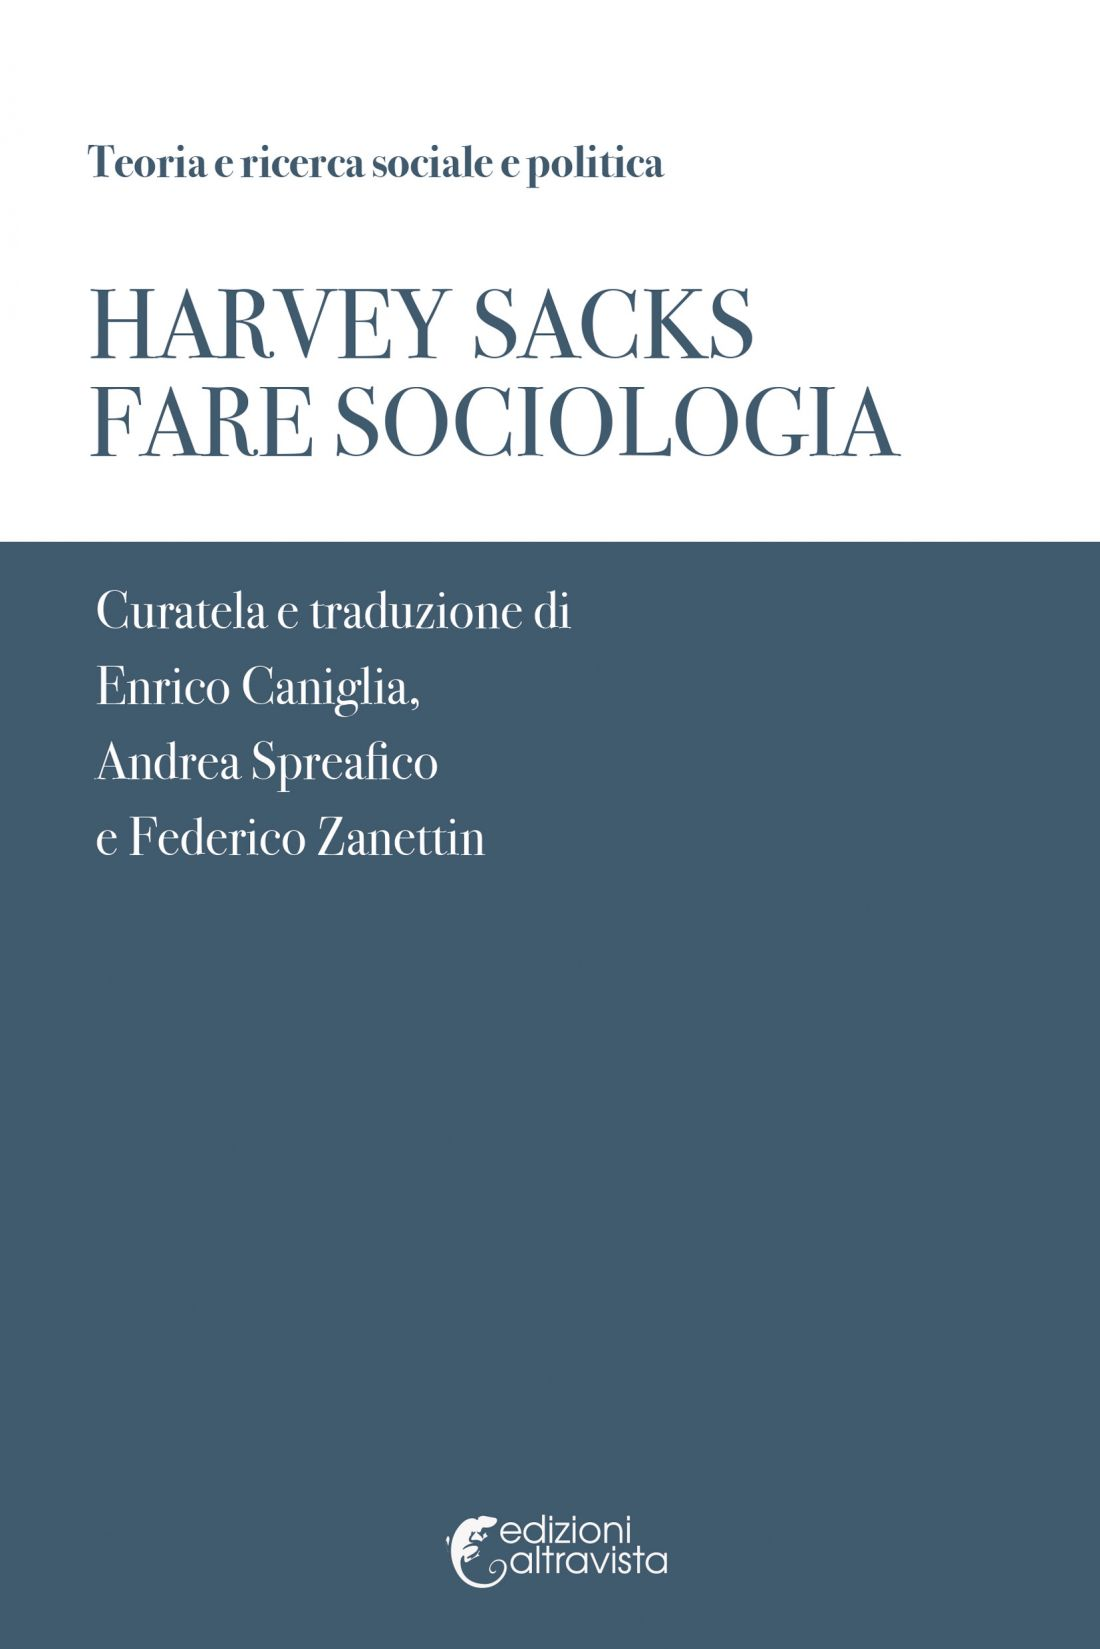 Harvey Sacks - Fare Sociologia